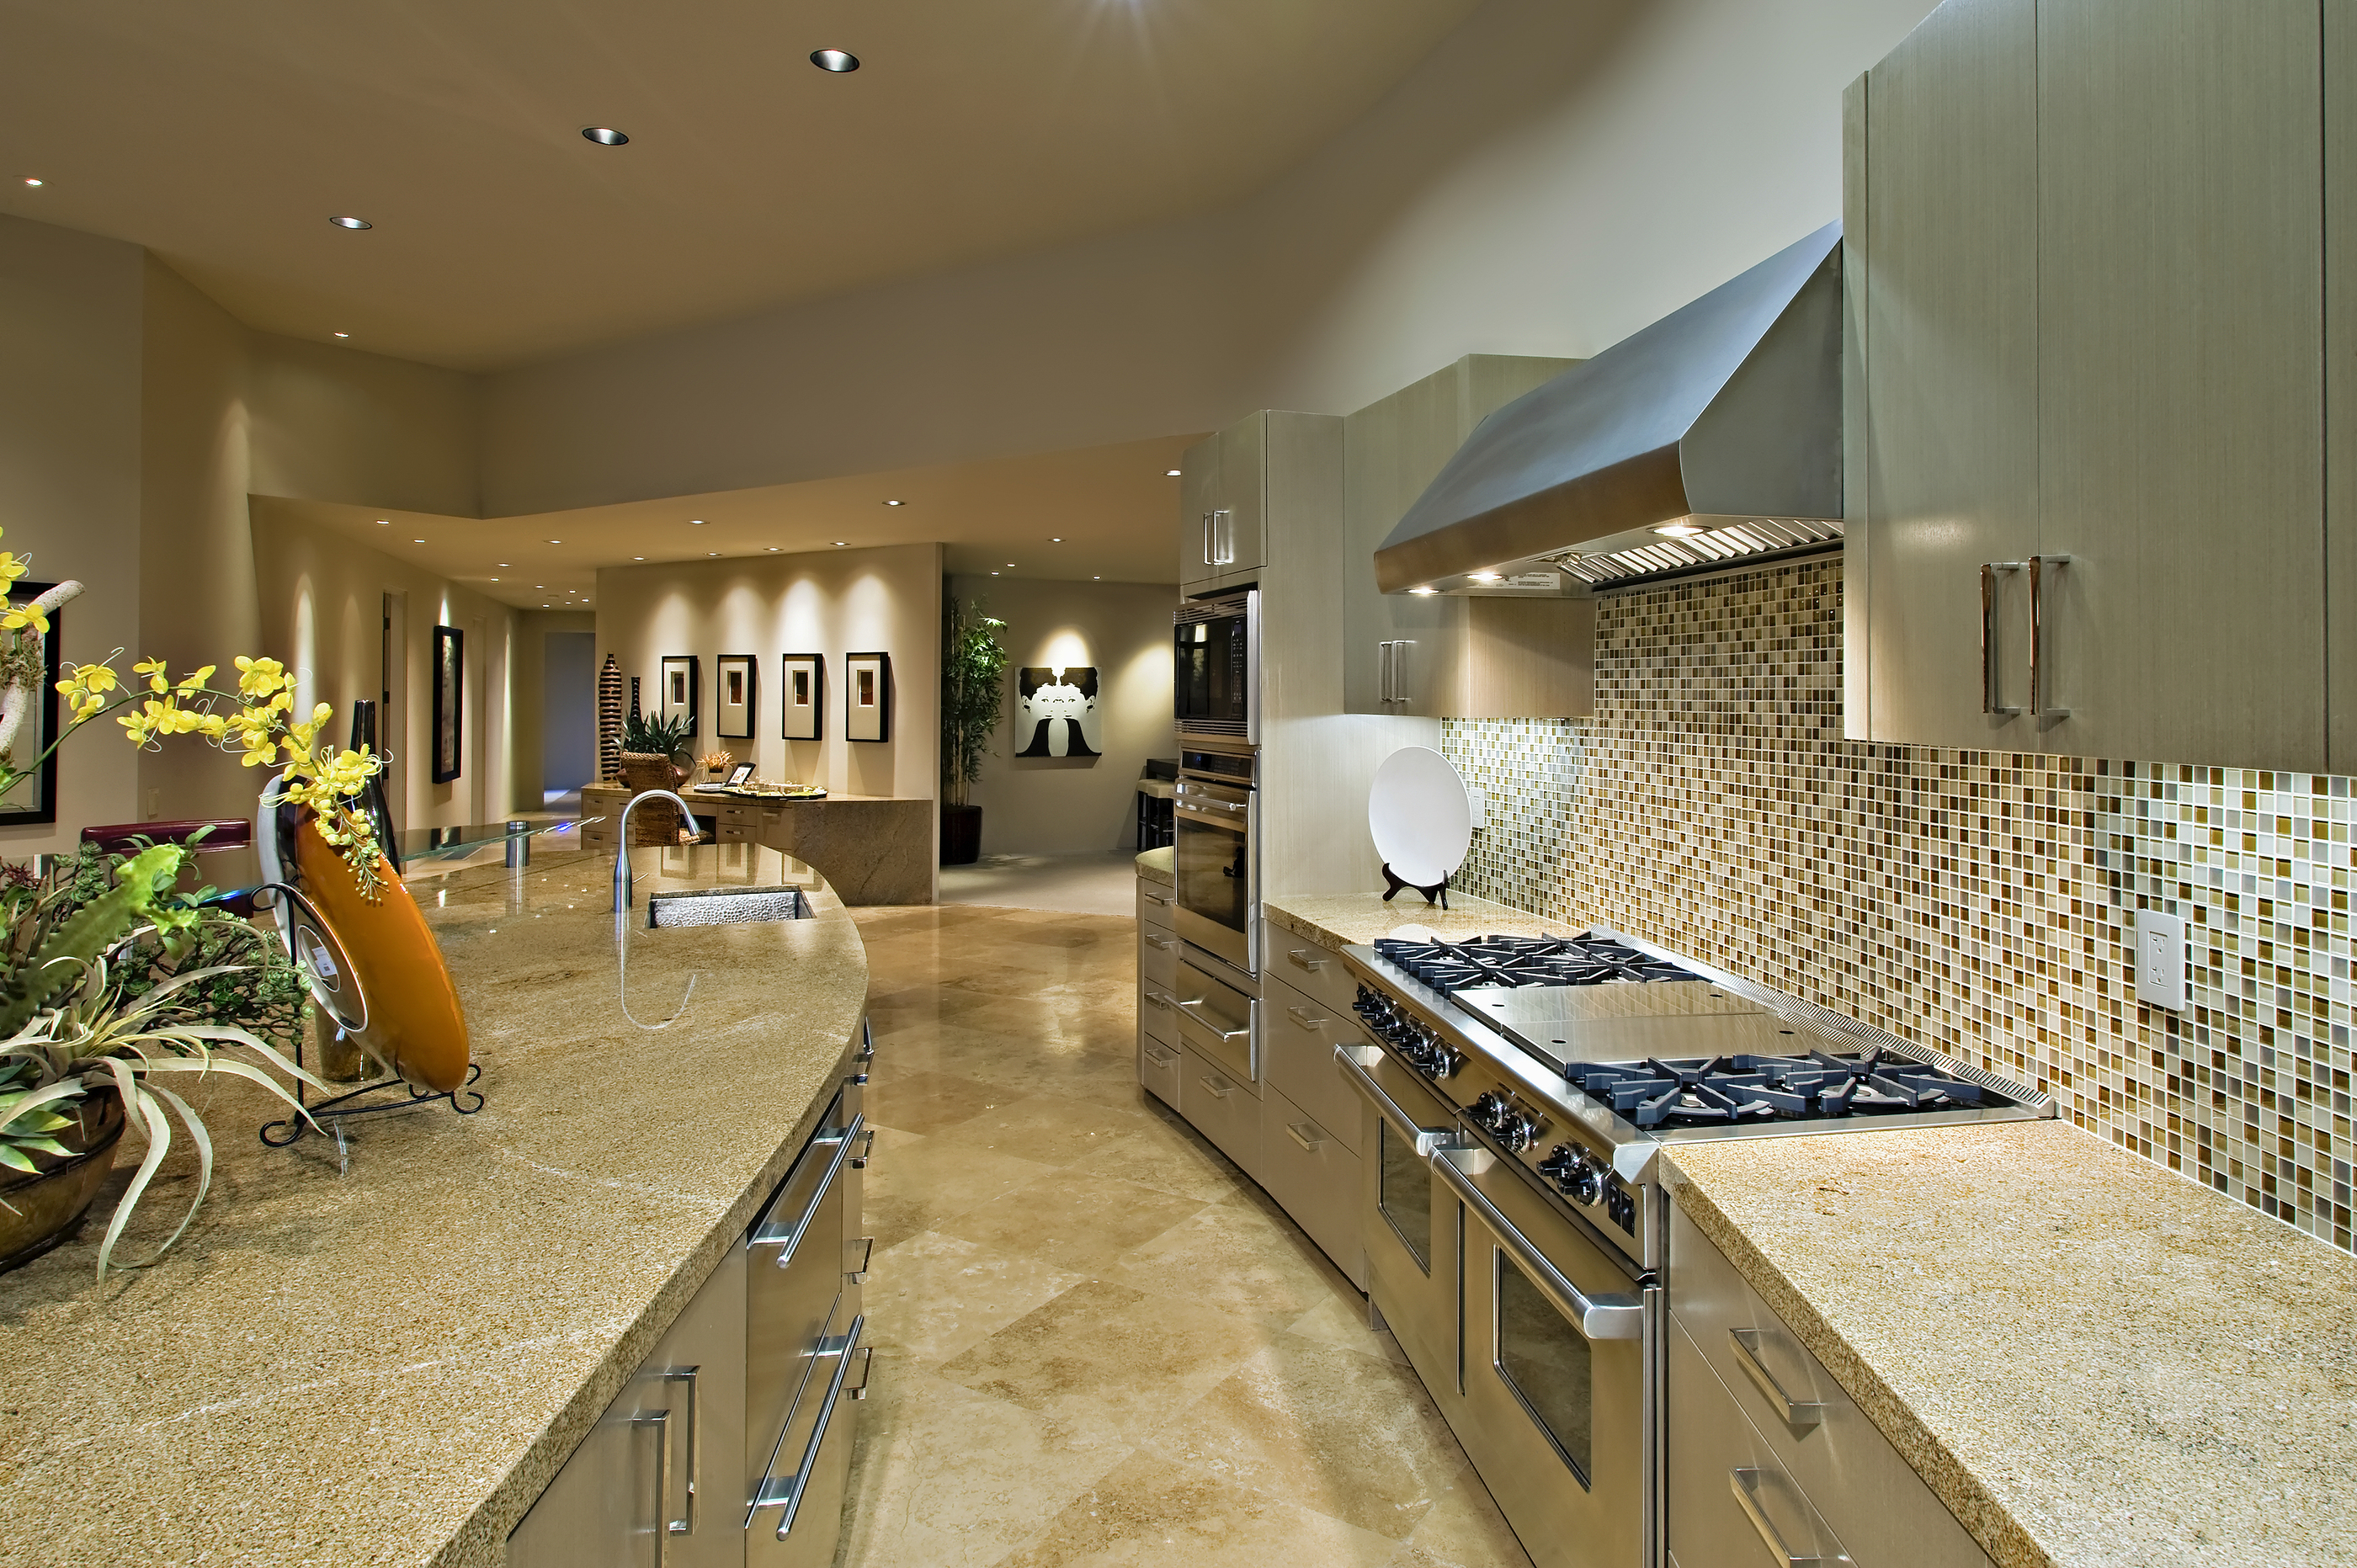 Open plan kitchen with living room in modern house